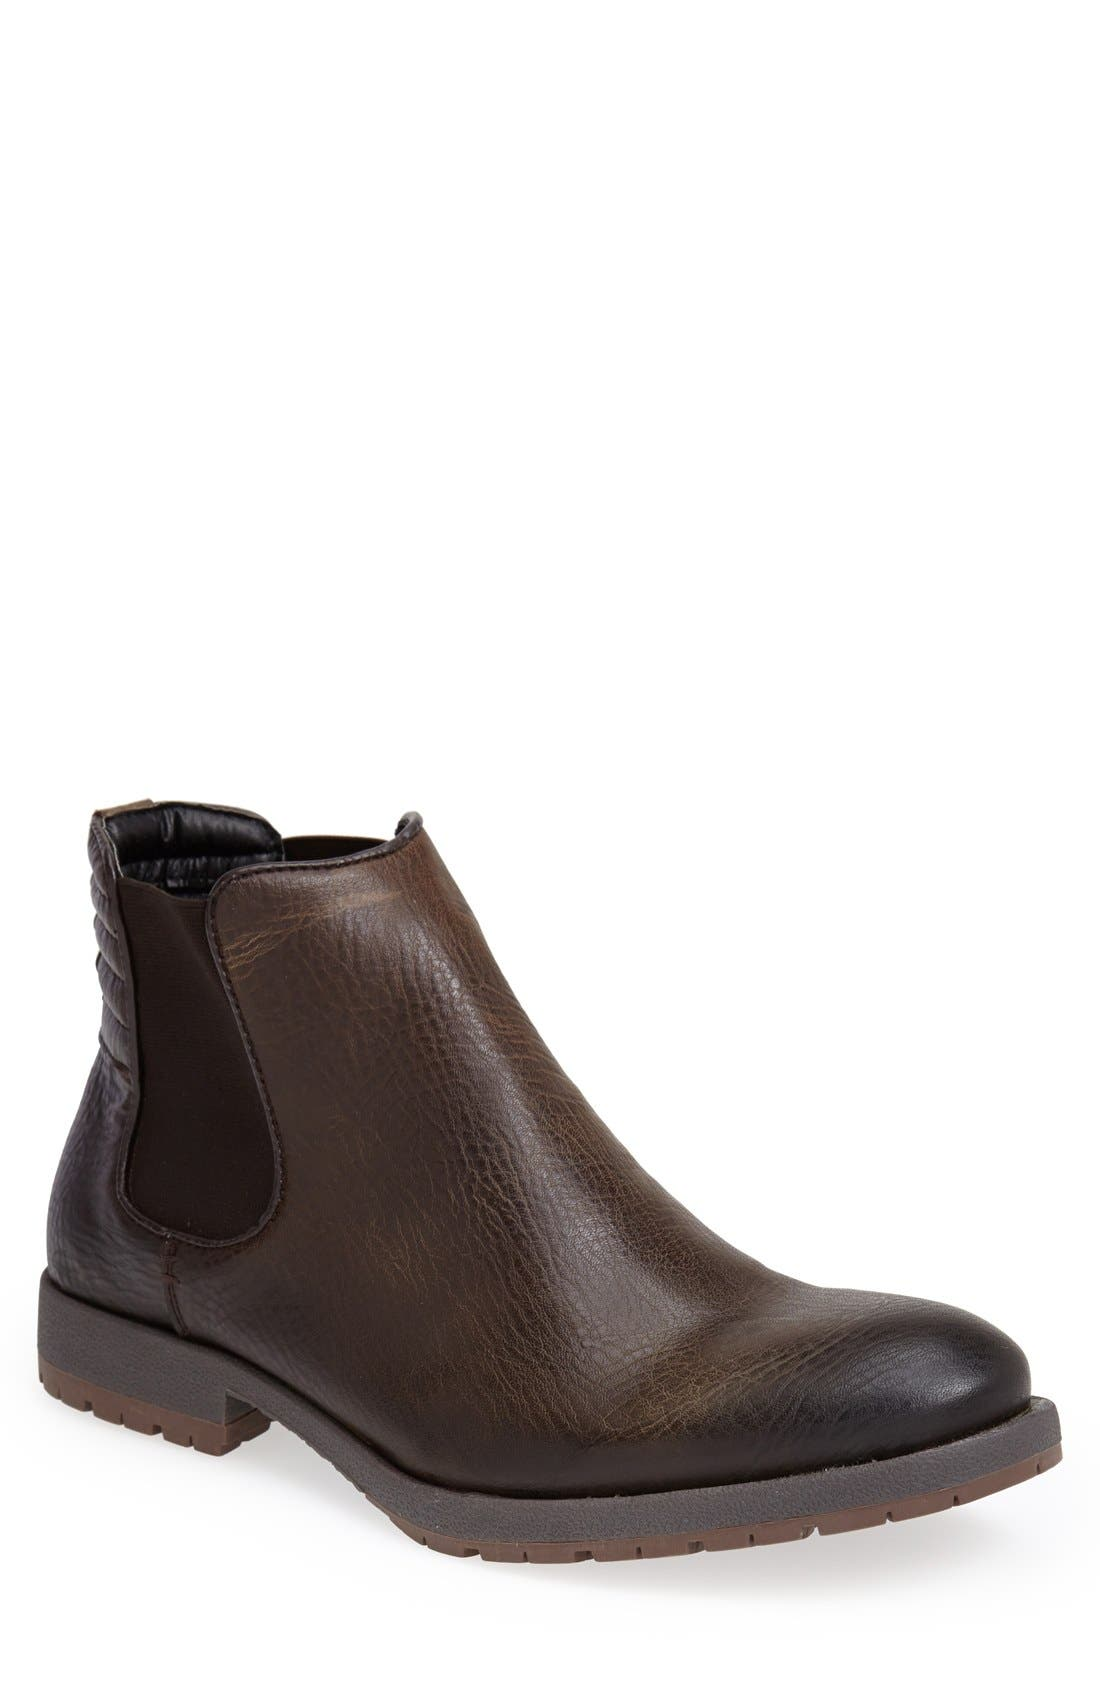 'Lazo' Chelsea Boot, Main, color, 207